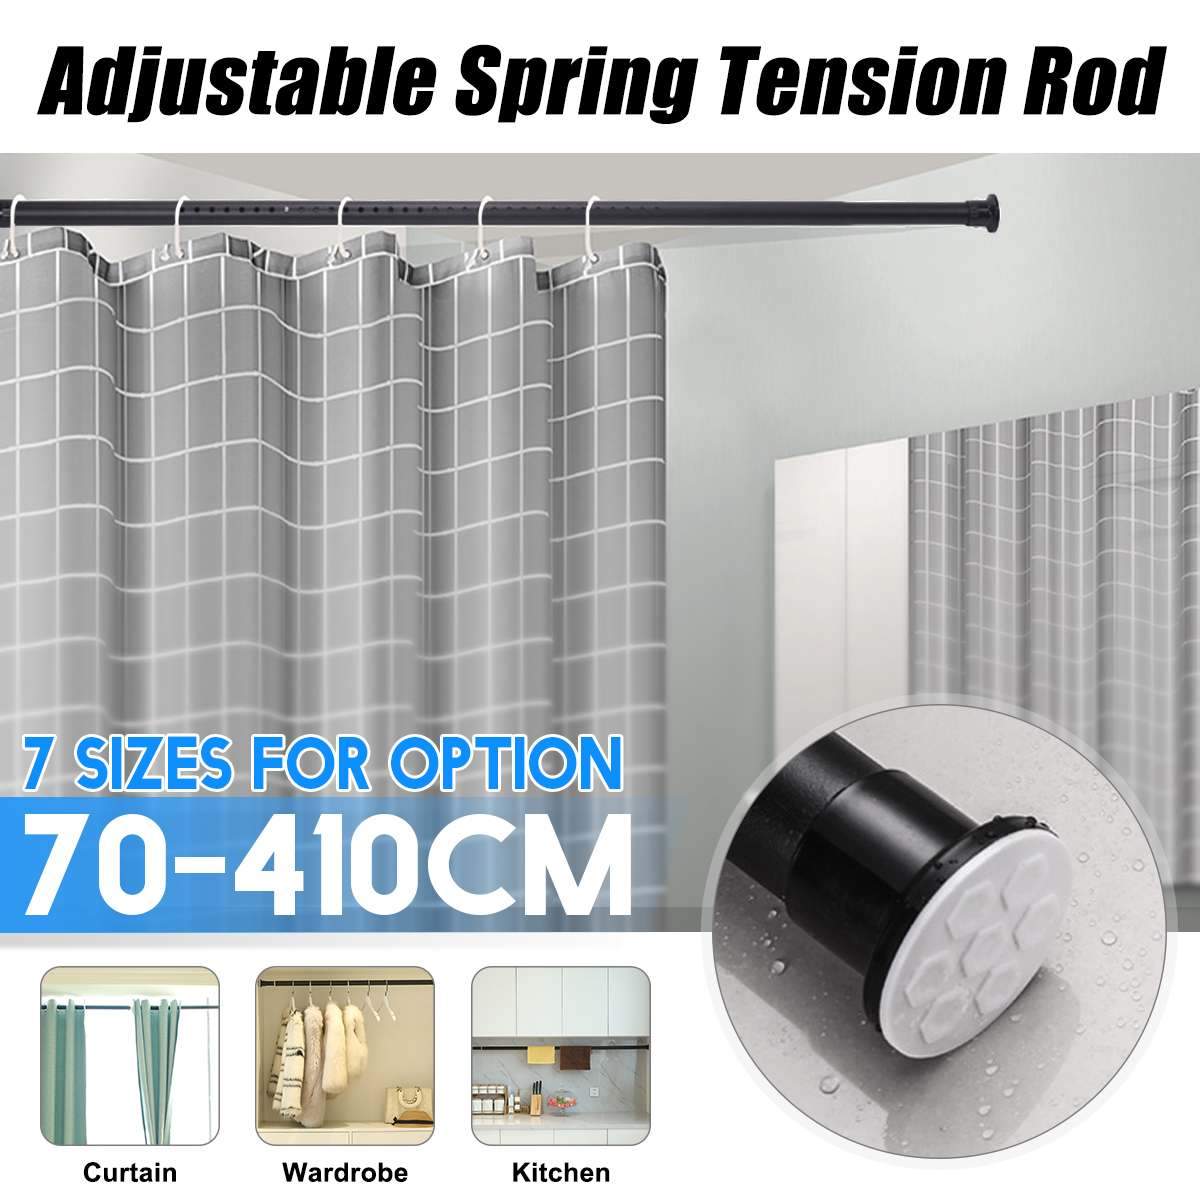 70cm to 410cm 7 sizes shower curtain rod adjustable stainless steel spring tension rod rail for clothes towels curtains